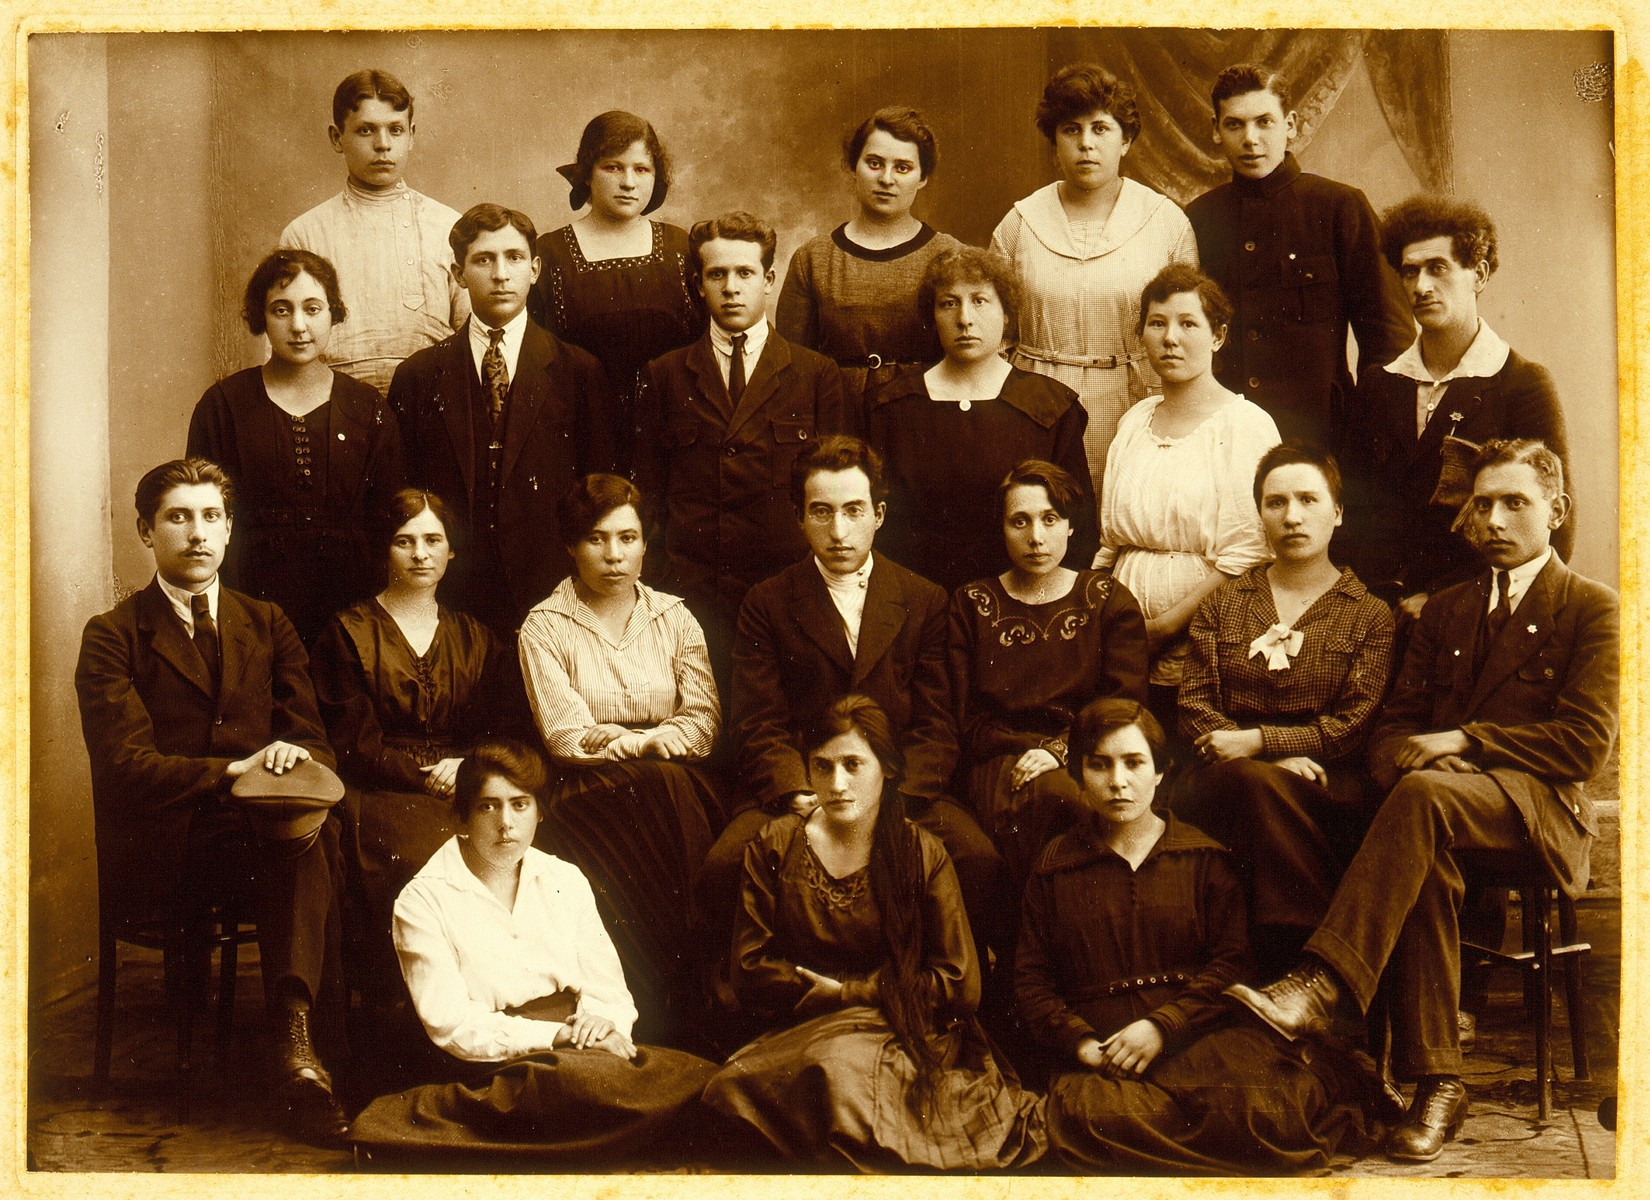 Group portrait of teachers in Vilna.    Sarah Rubinstein (seated second row from bottom, third from left) immigrated to Palestine.  The fate of the other teachers is unknown.